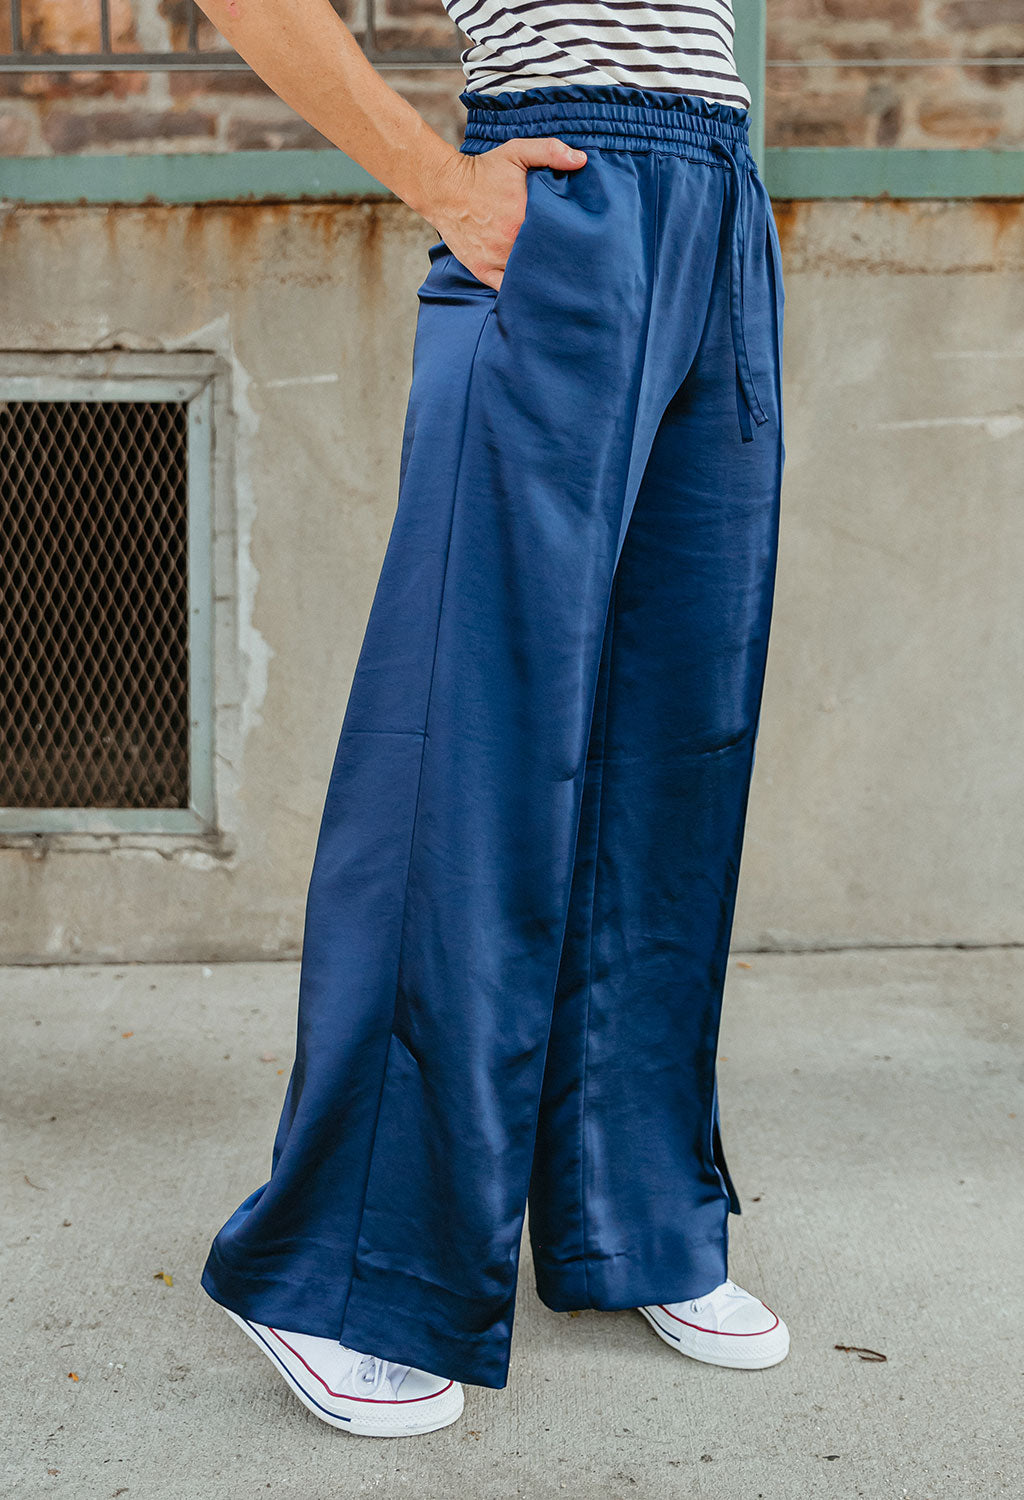 Scotch & Soda Joelle Wide Leg Pant